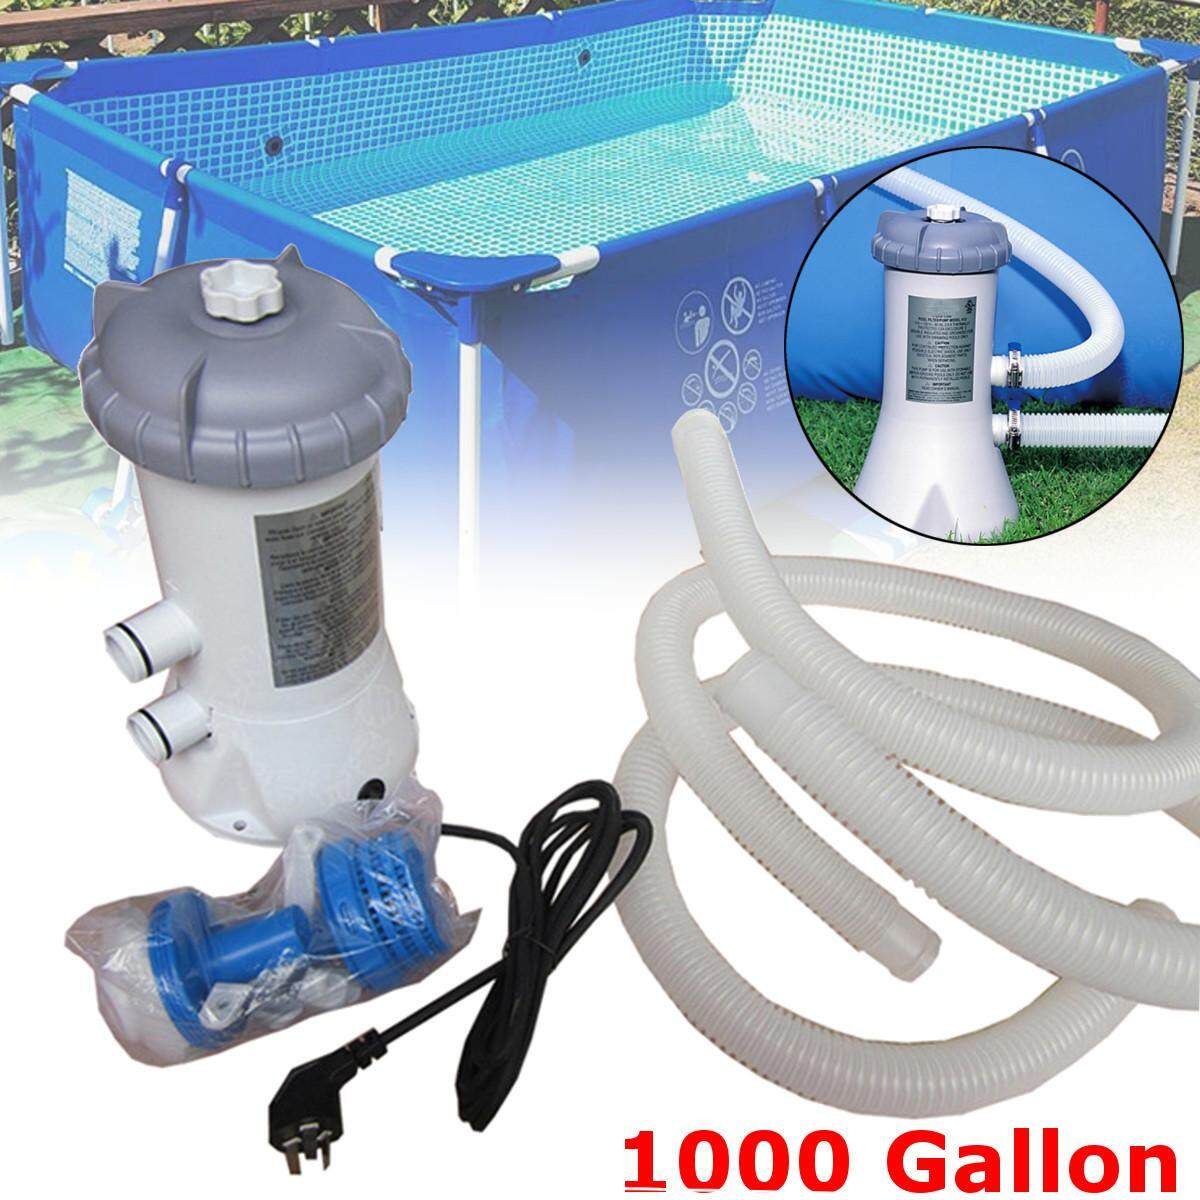 1000gal 220v Filter Pump Tools For Intex Swimming Pool Fast Ground Steel Frame By Teamwin.